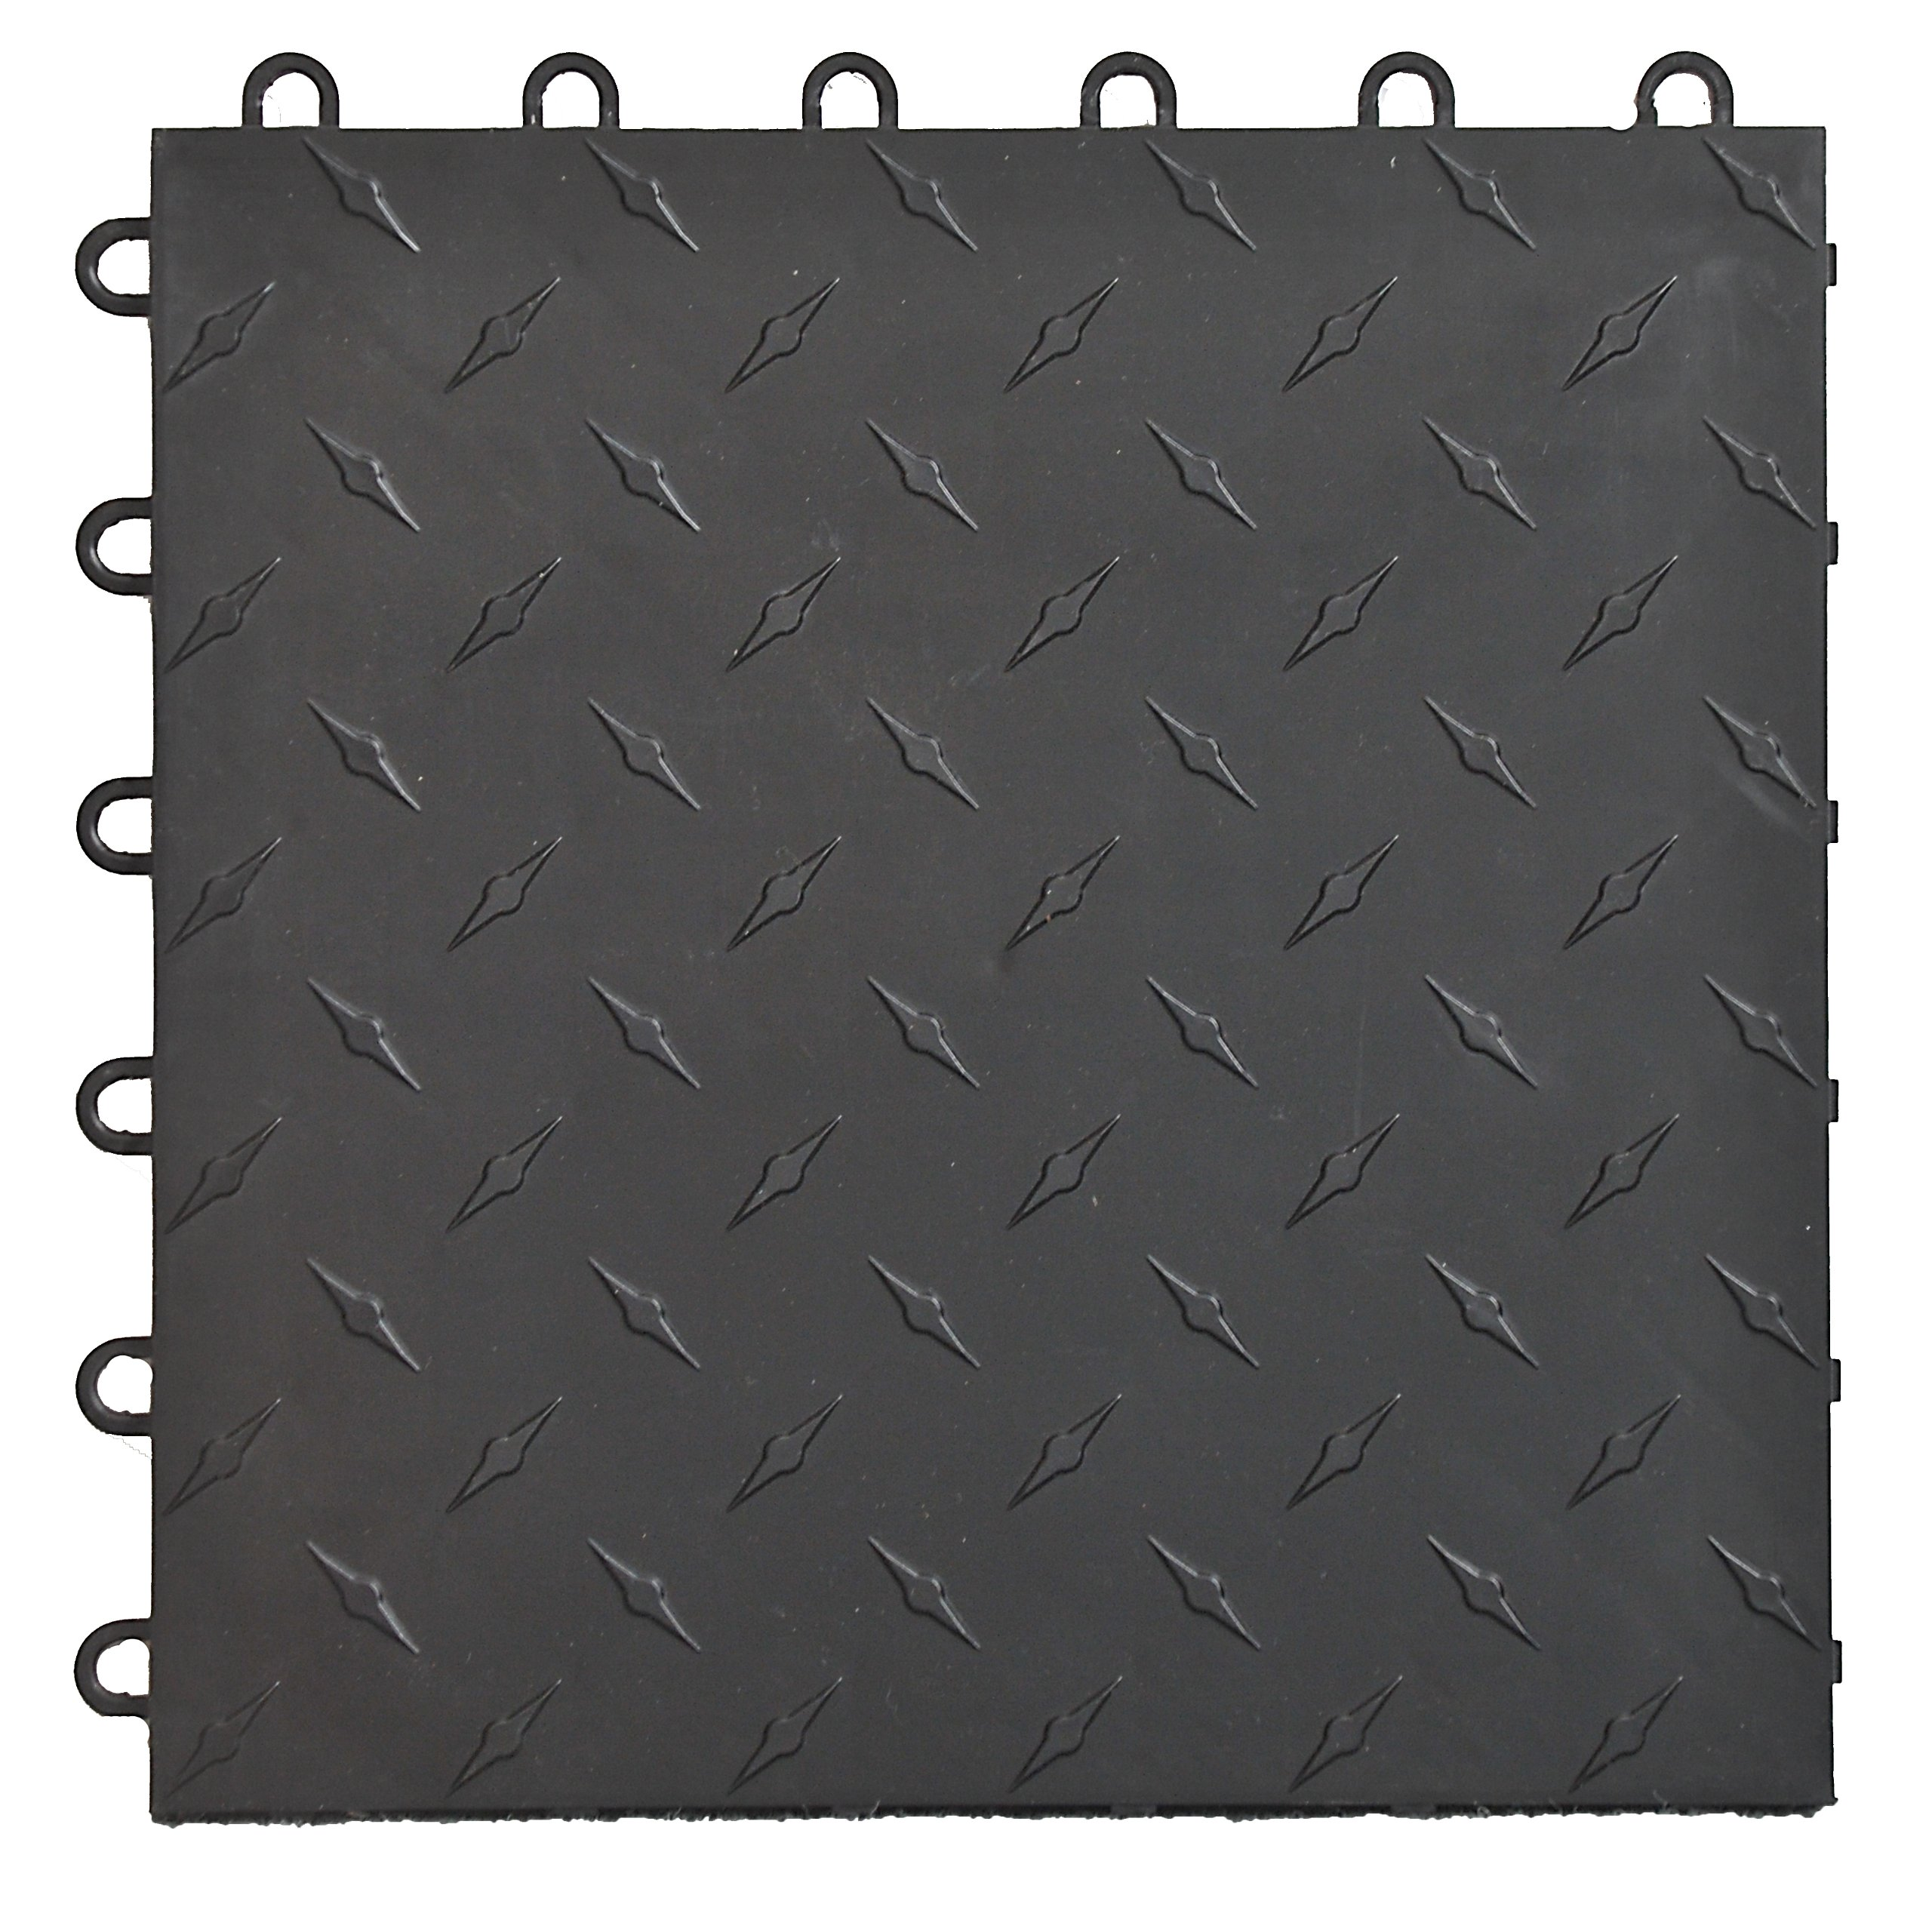 Speedway Garage Tile 789453B-50 Diamond Garage Floor 6 LOCK Diamond Tile 50 Pack, Black